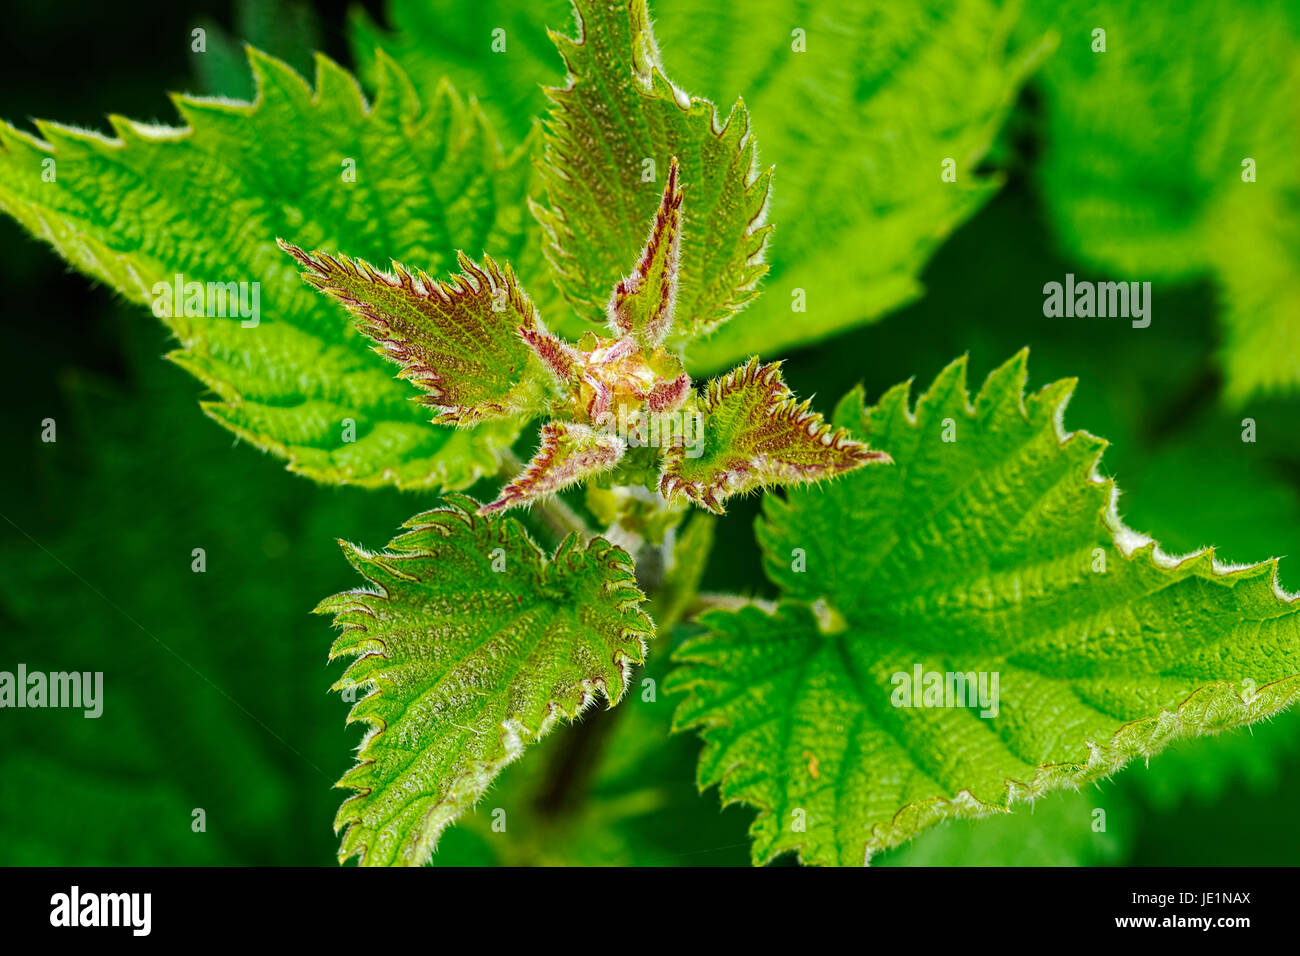 Close-up of a common stinging nettle with green, red tinged, hairy, leaves.growing in a meadow - Stock Image